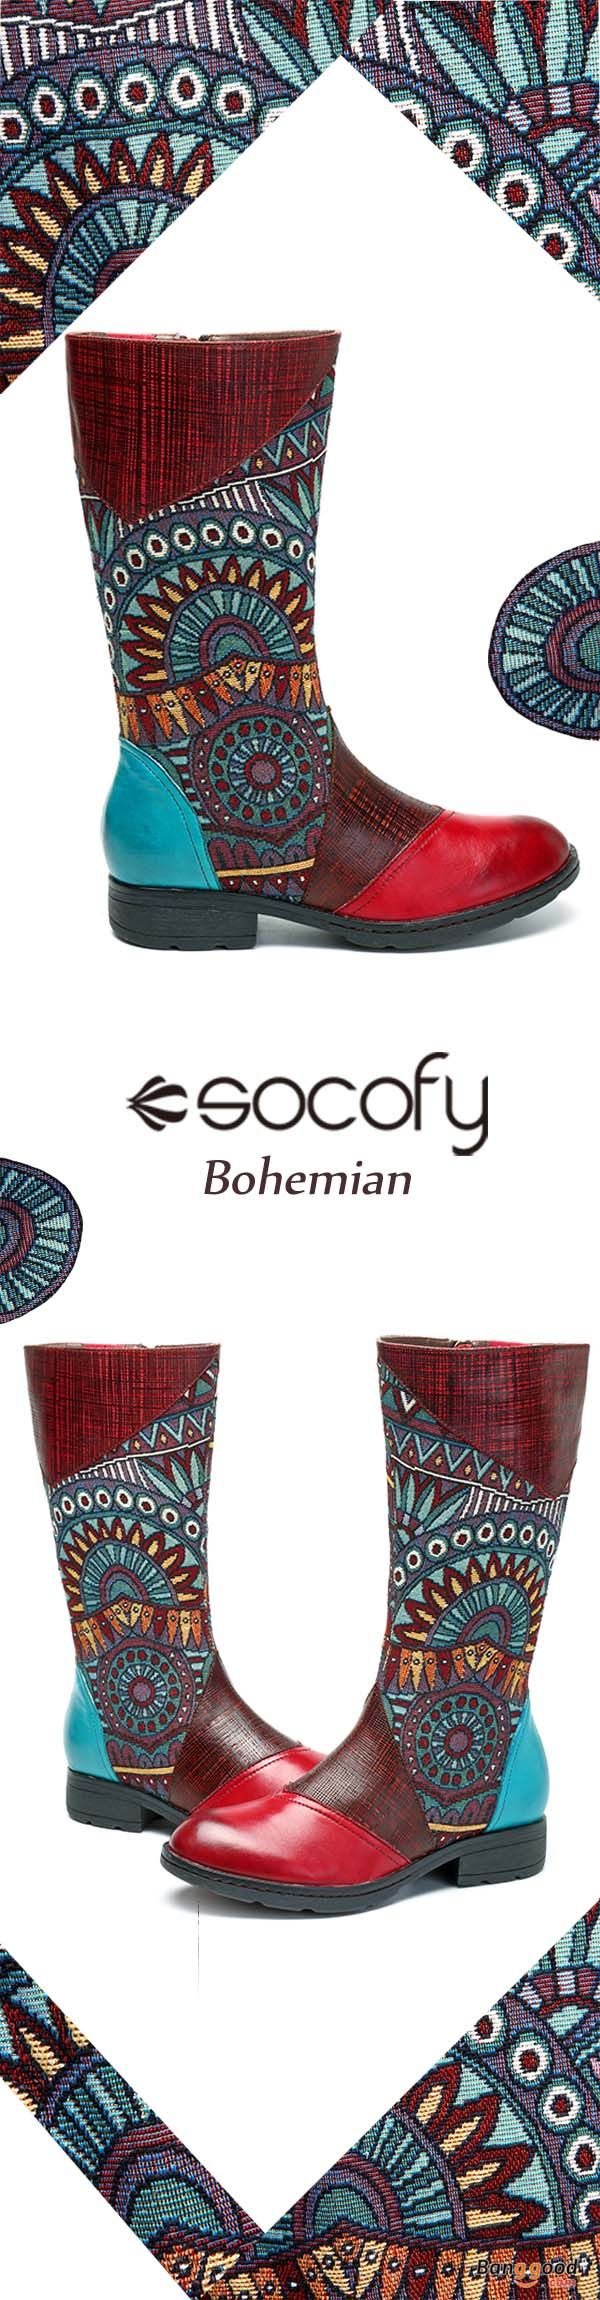 SOCOFY Women Retro Splicing Pattern Flat Mid-calf Leather Boots. bohemian style, shoes boots, boots outfit, womens boots, winter boots, ankle boots, leather boots, snow boots. Buy now!